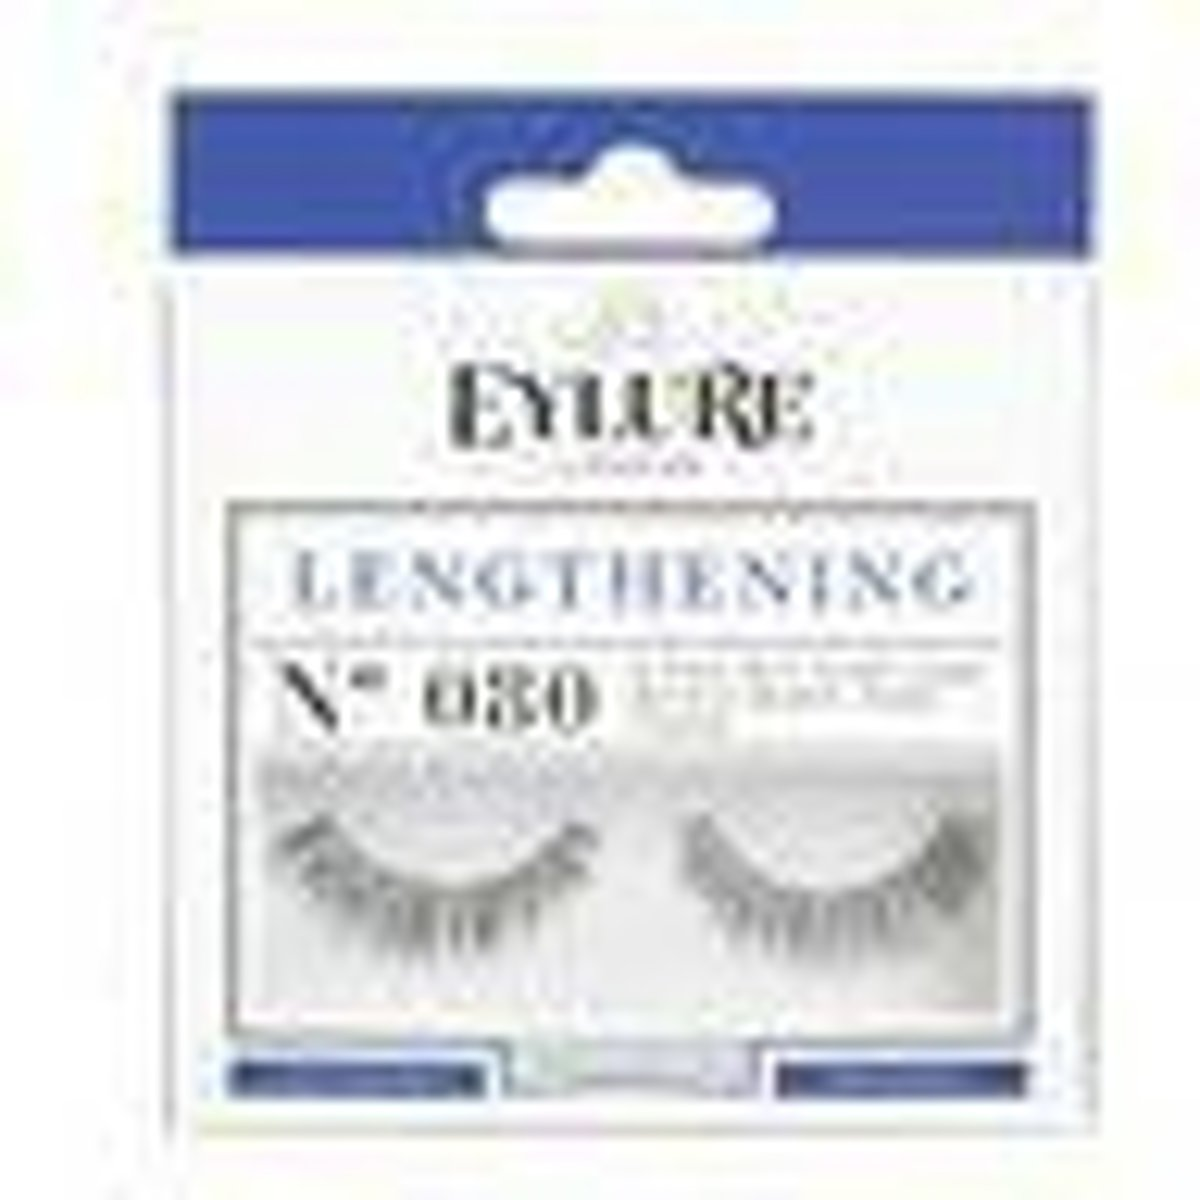 Eylure Lengthening - No. 080